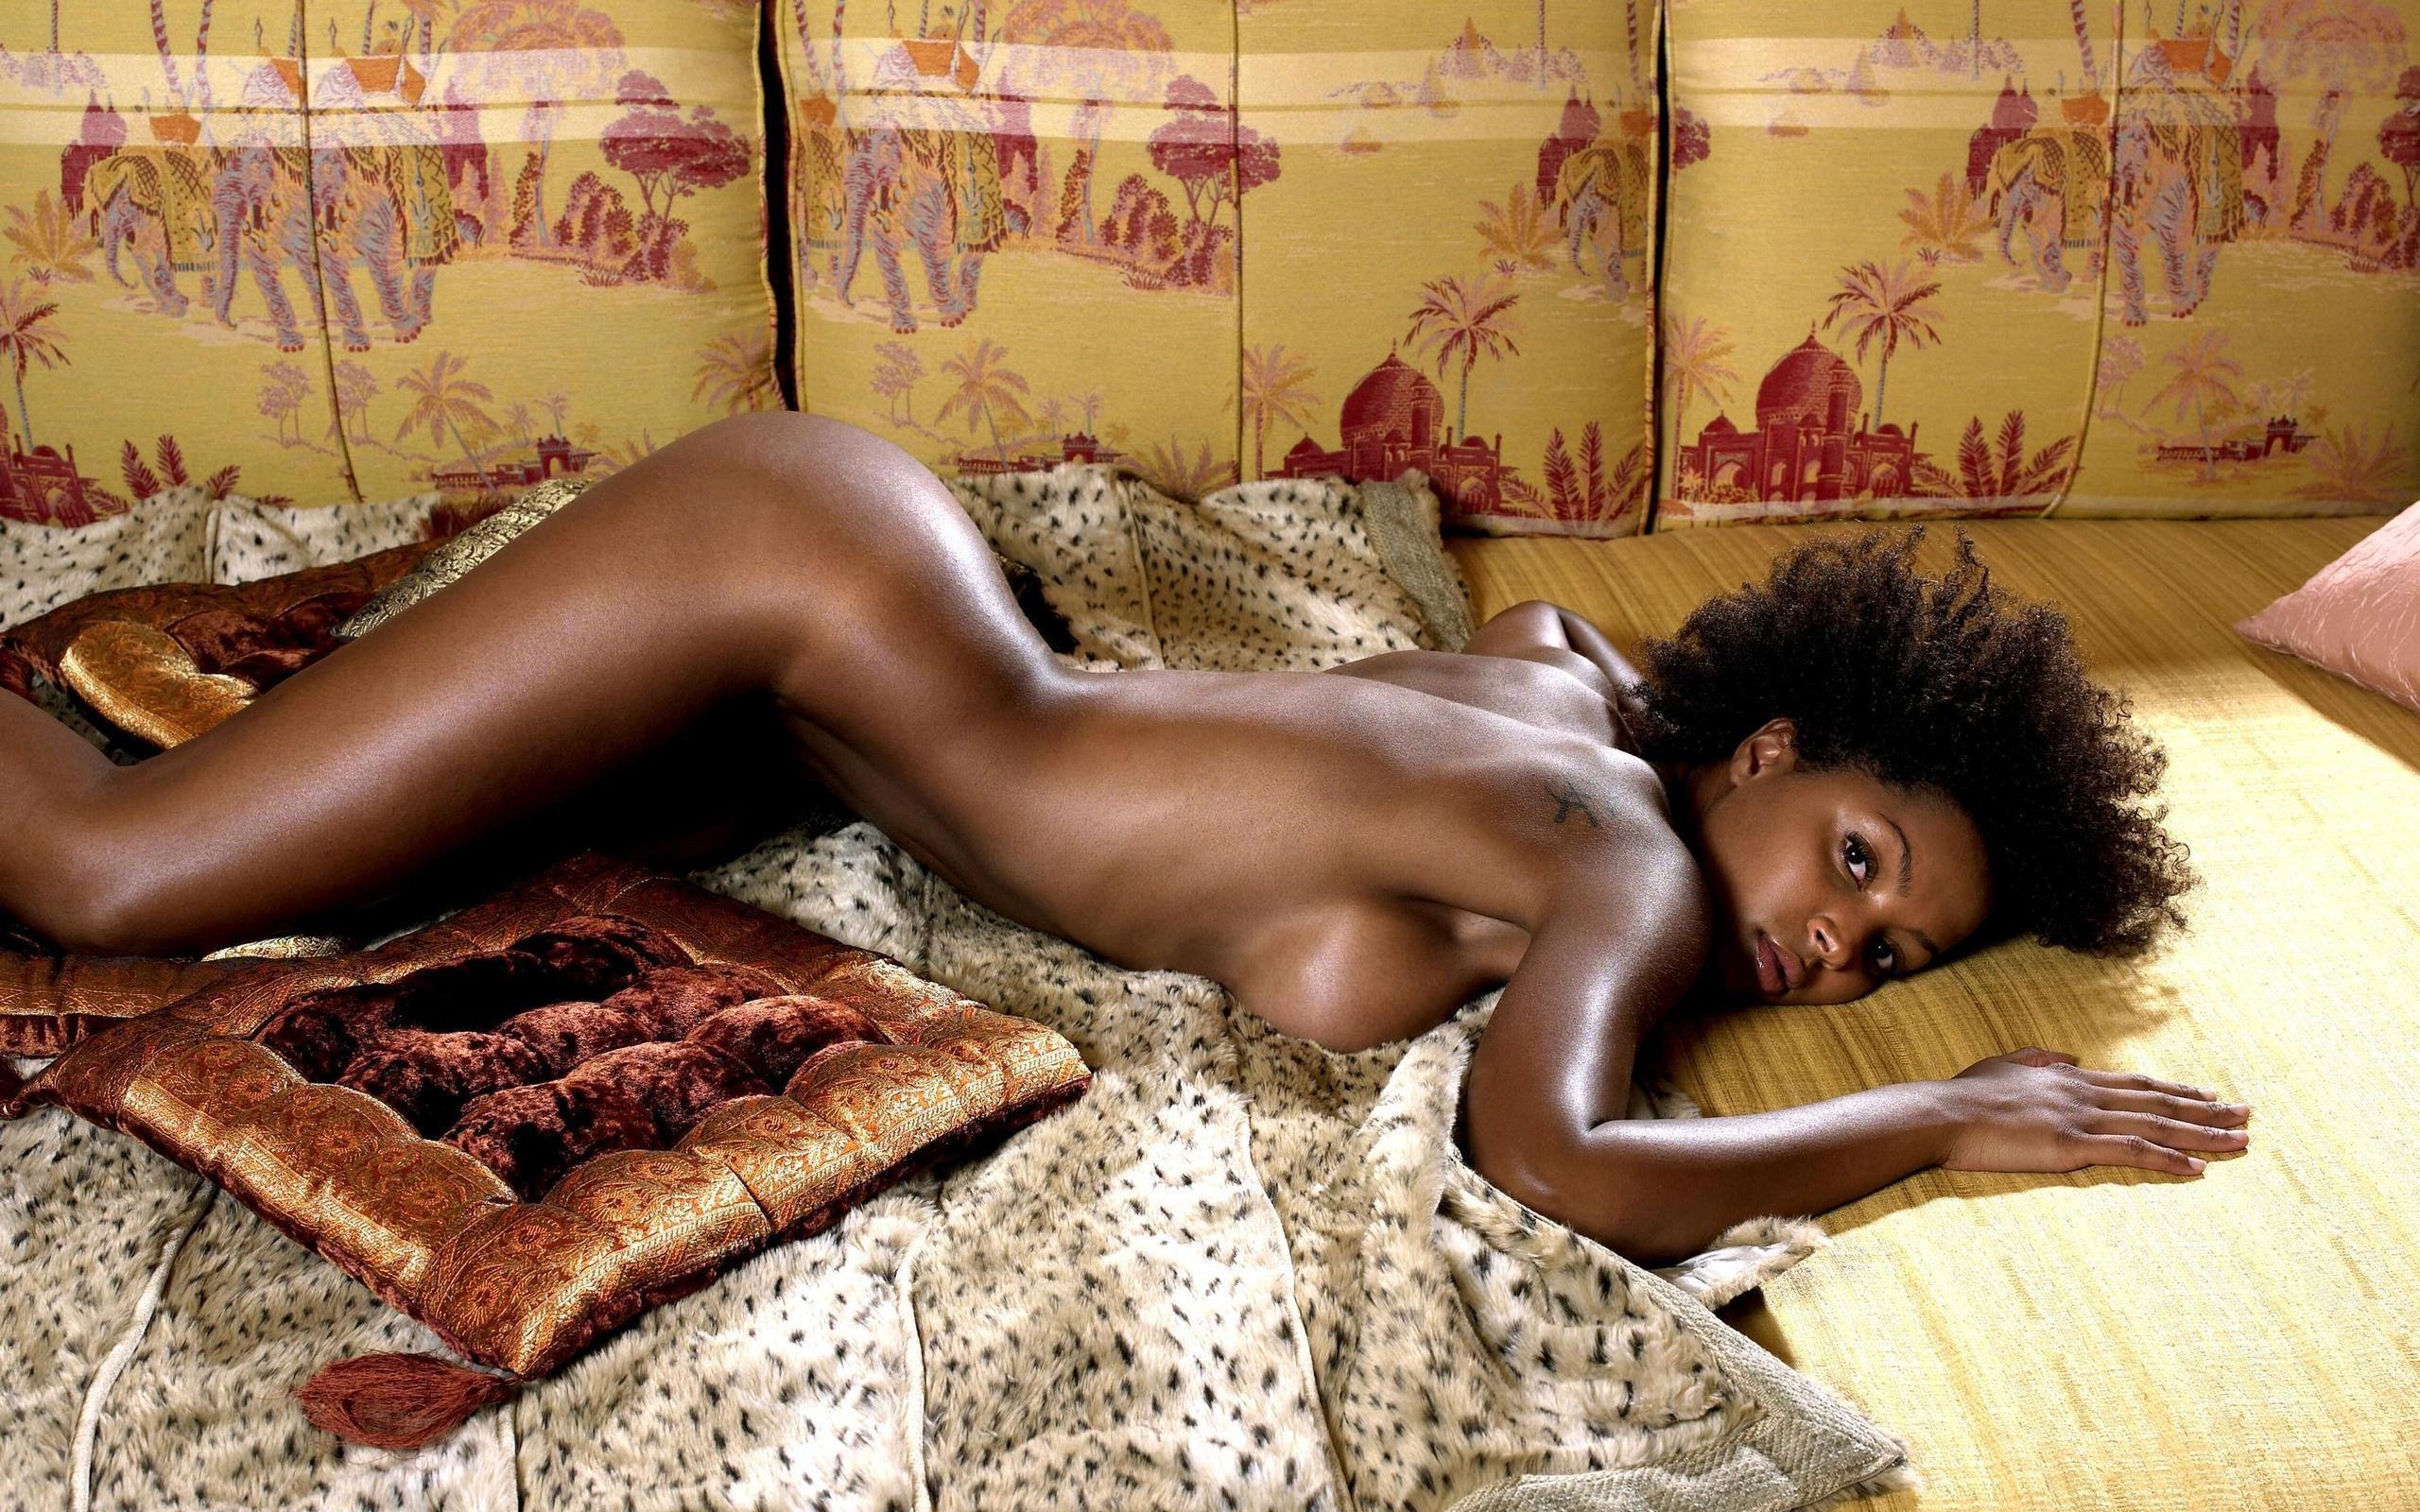 Hot black babes posing naked because they want to be famous